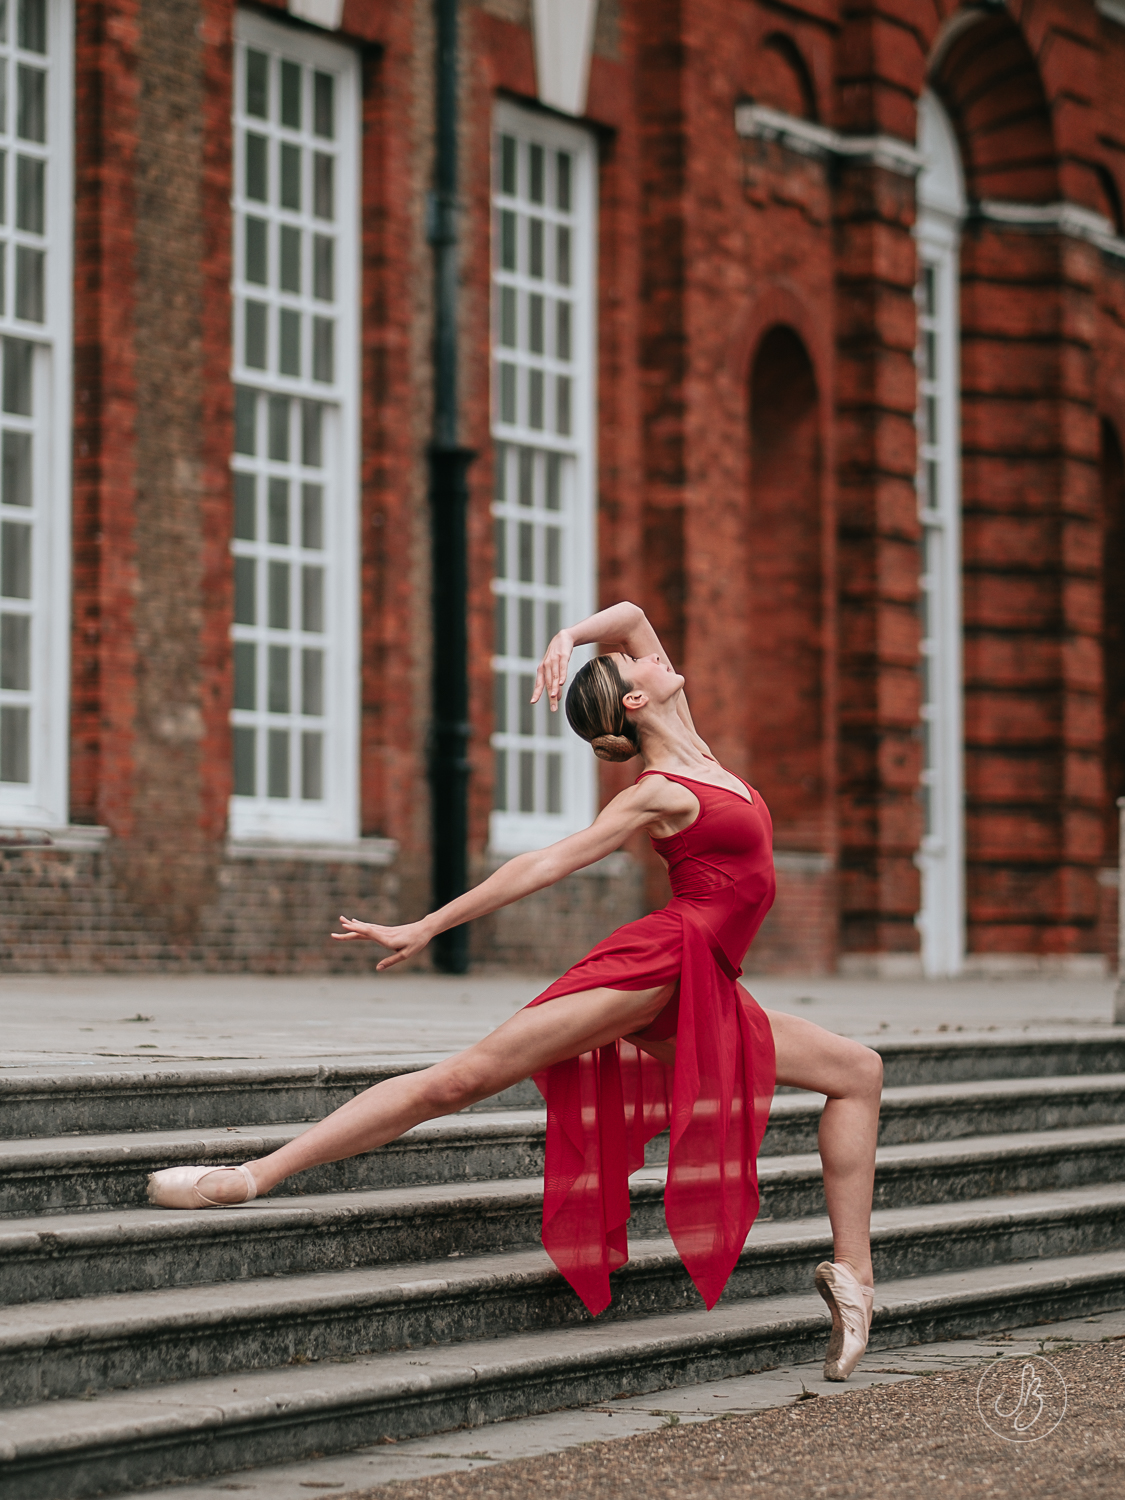 Suzi Bird Dance Photographer Bristol Clevedon London 17.jpg